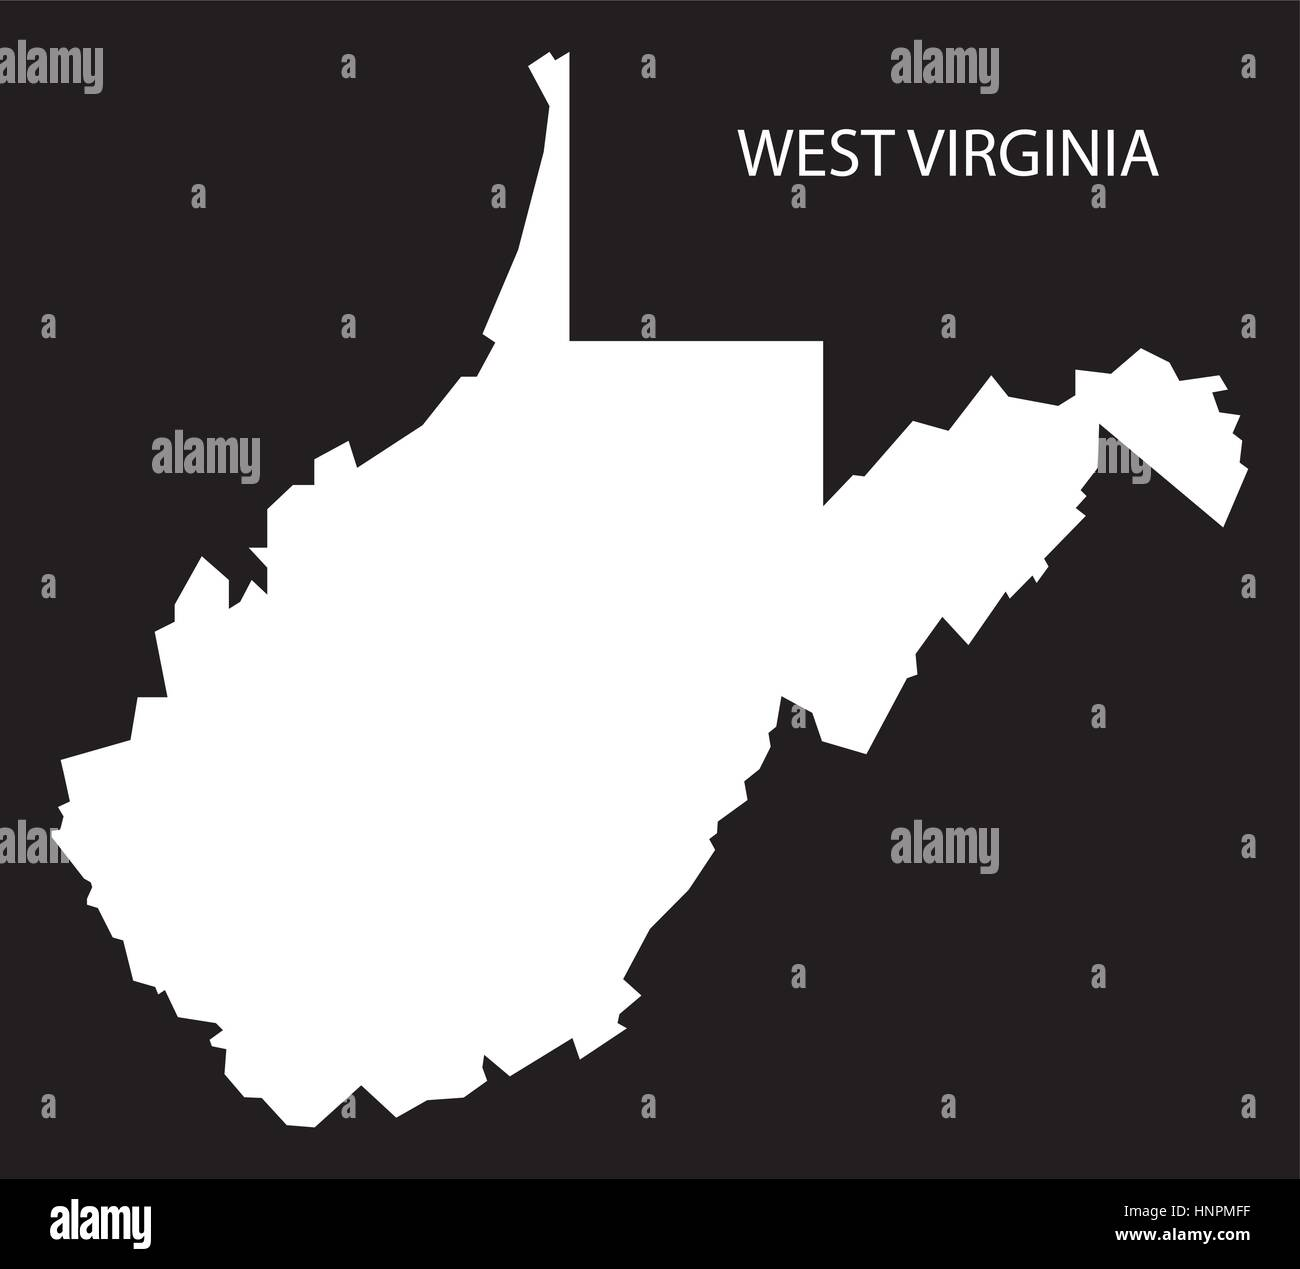 West Virginia USA Map Black Inverted Silhouette Stock Vector Art - West virginia us map